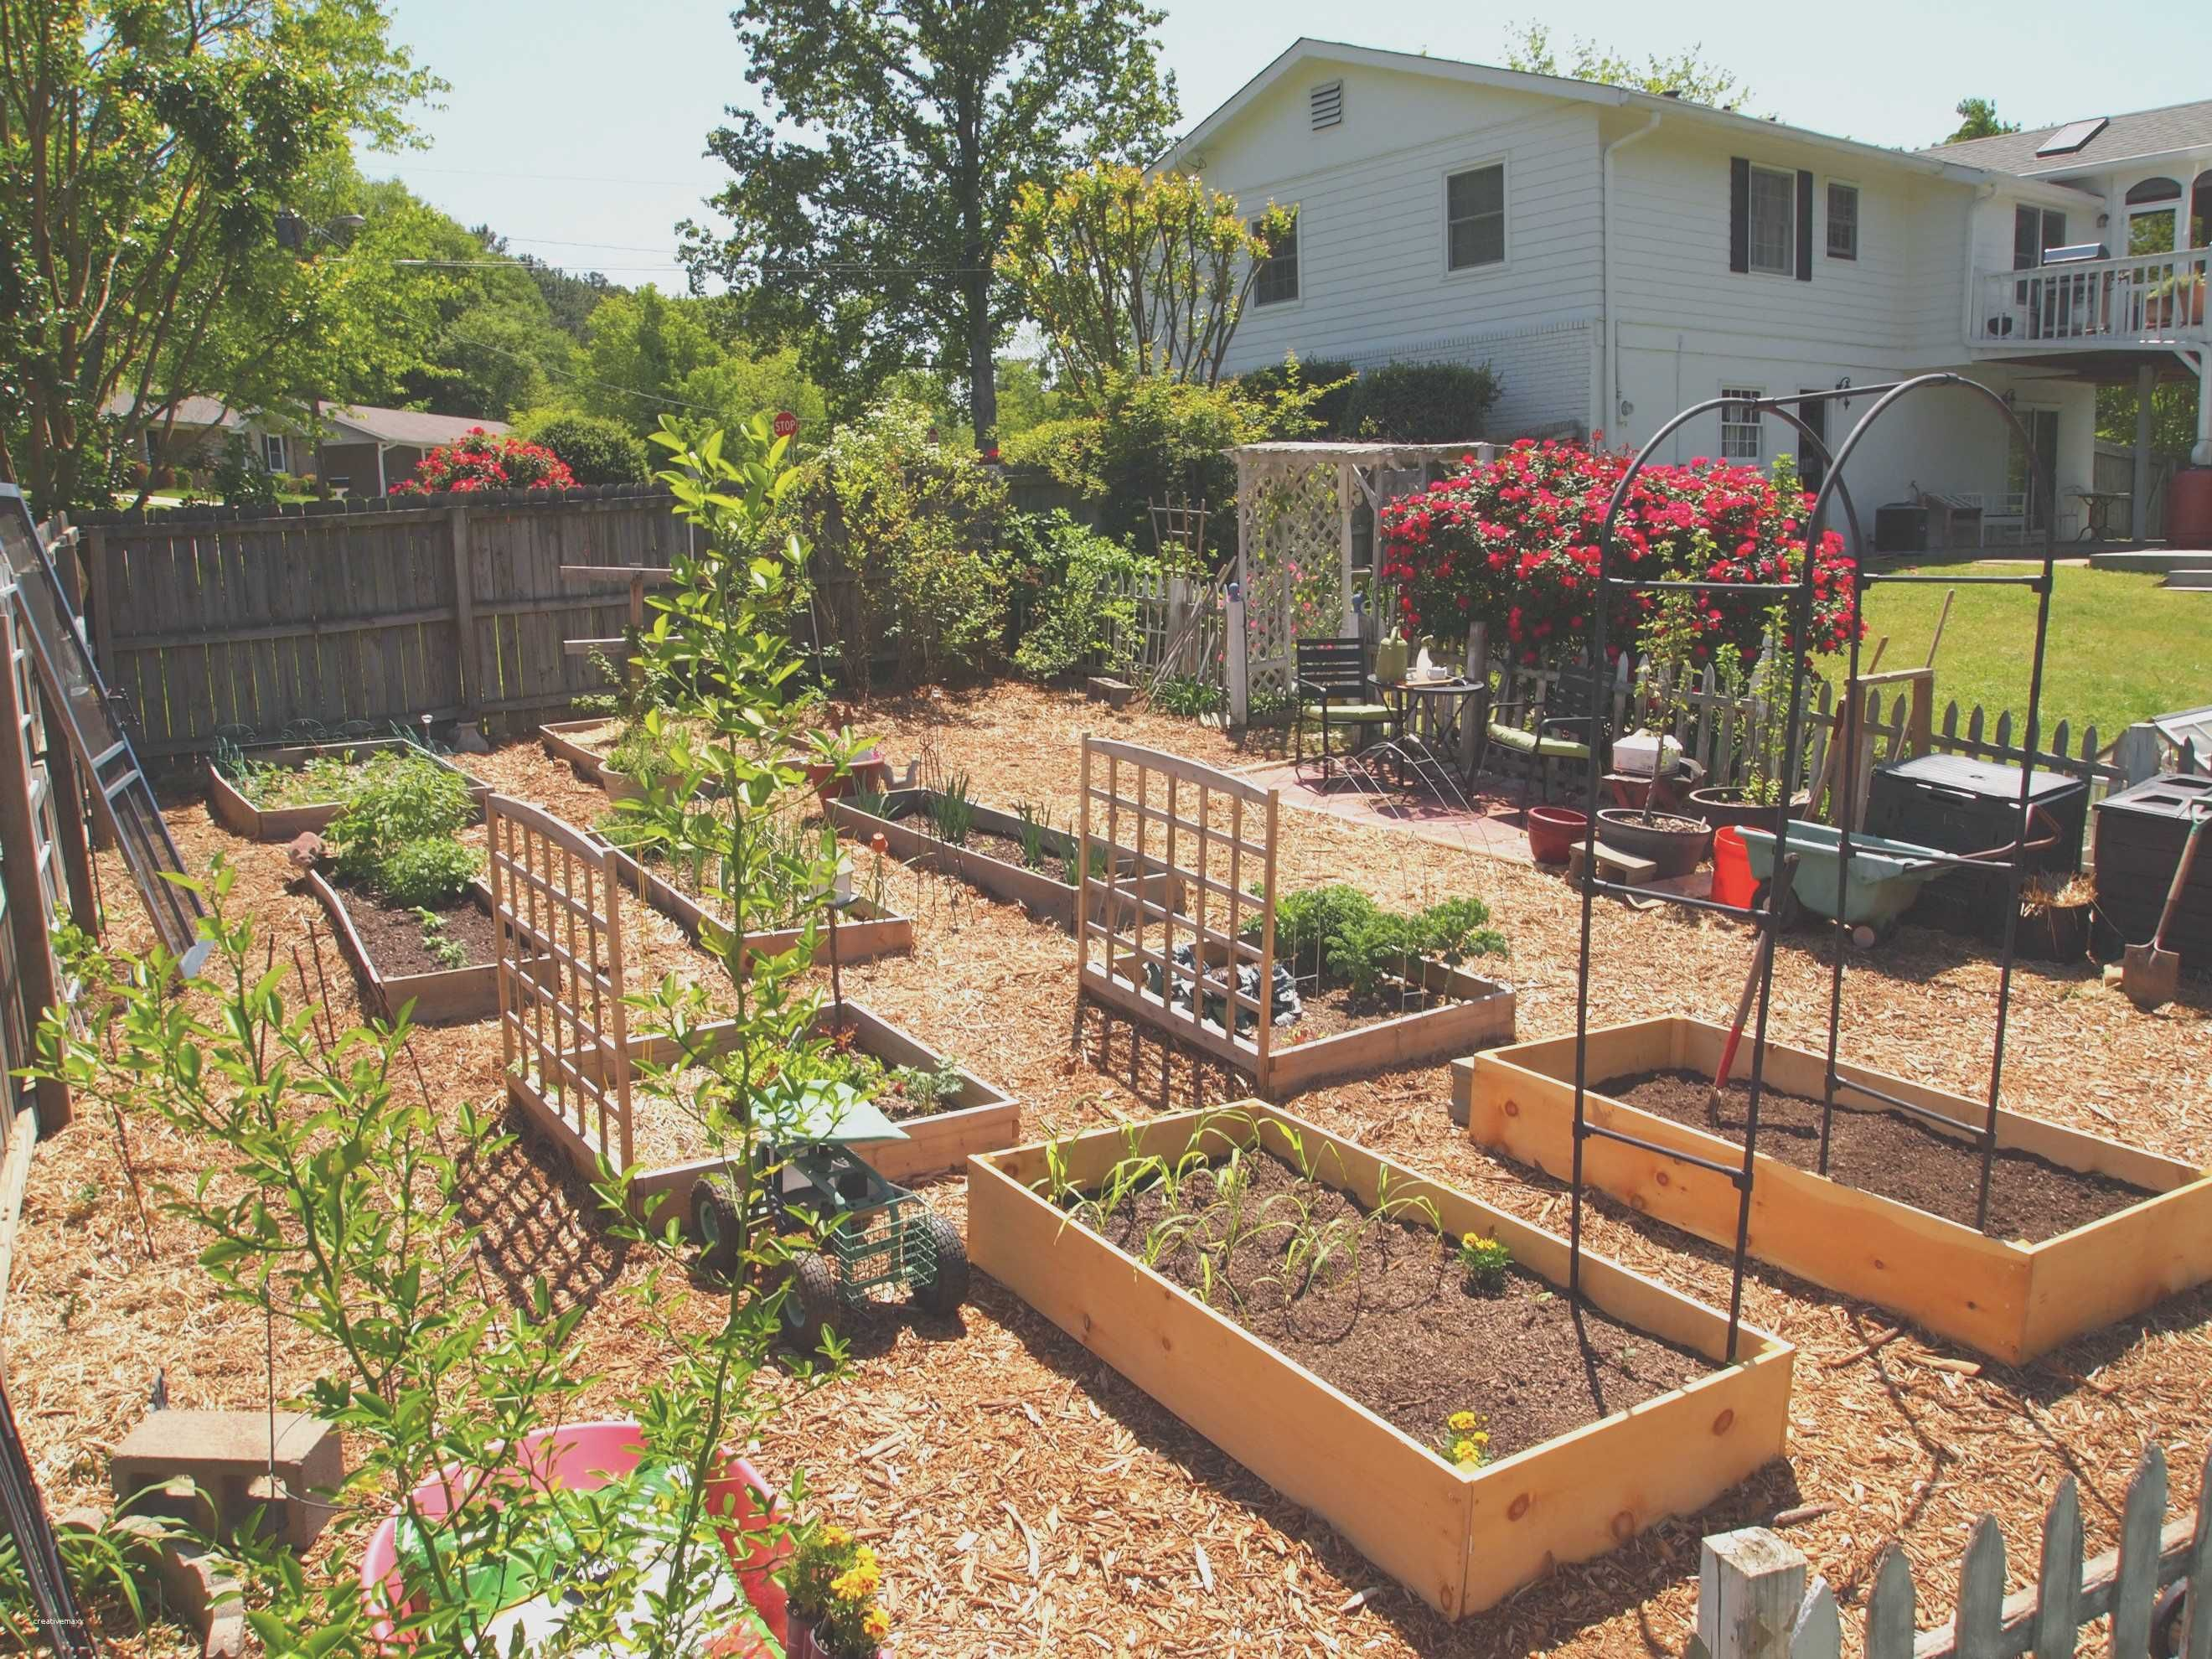 Vegetable Garden Ideas For Small Spaces